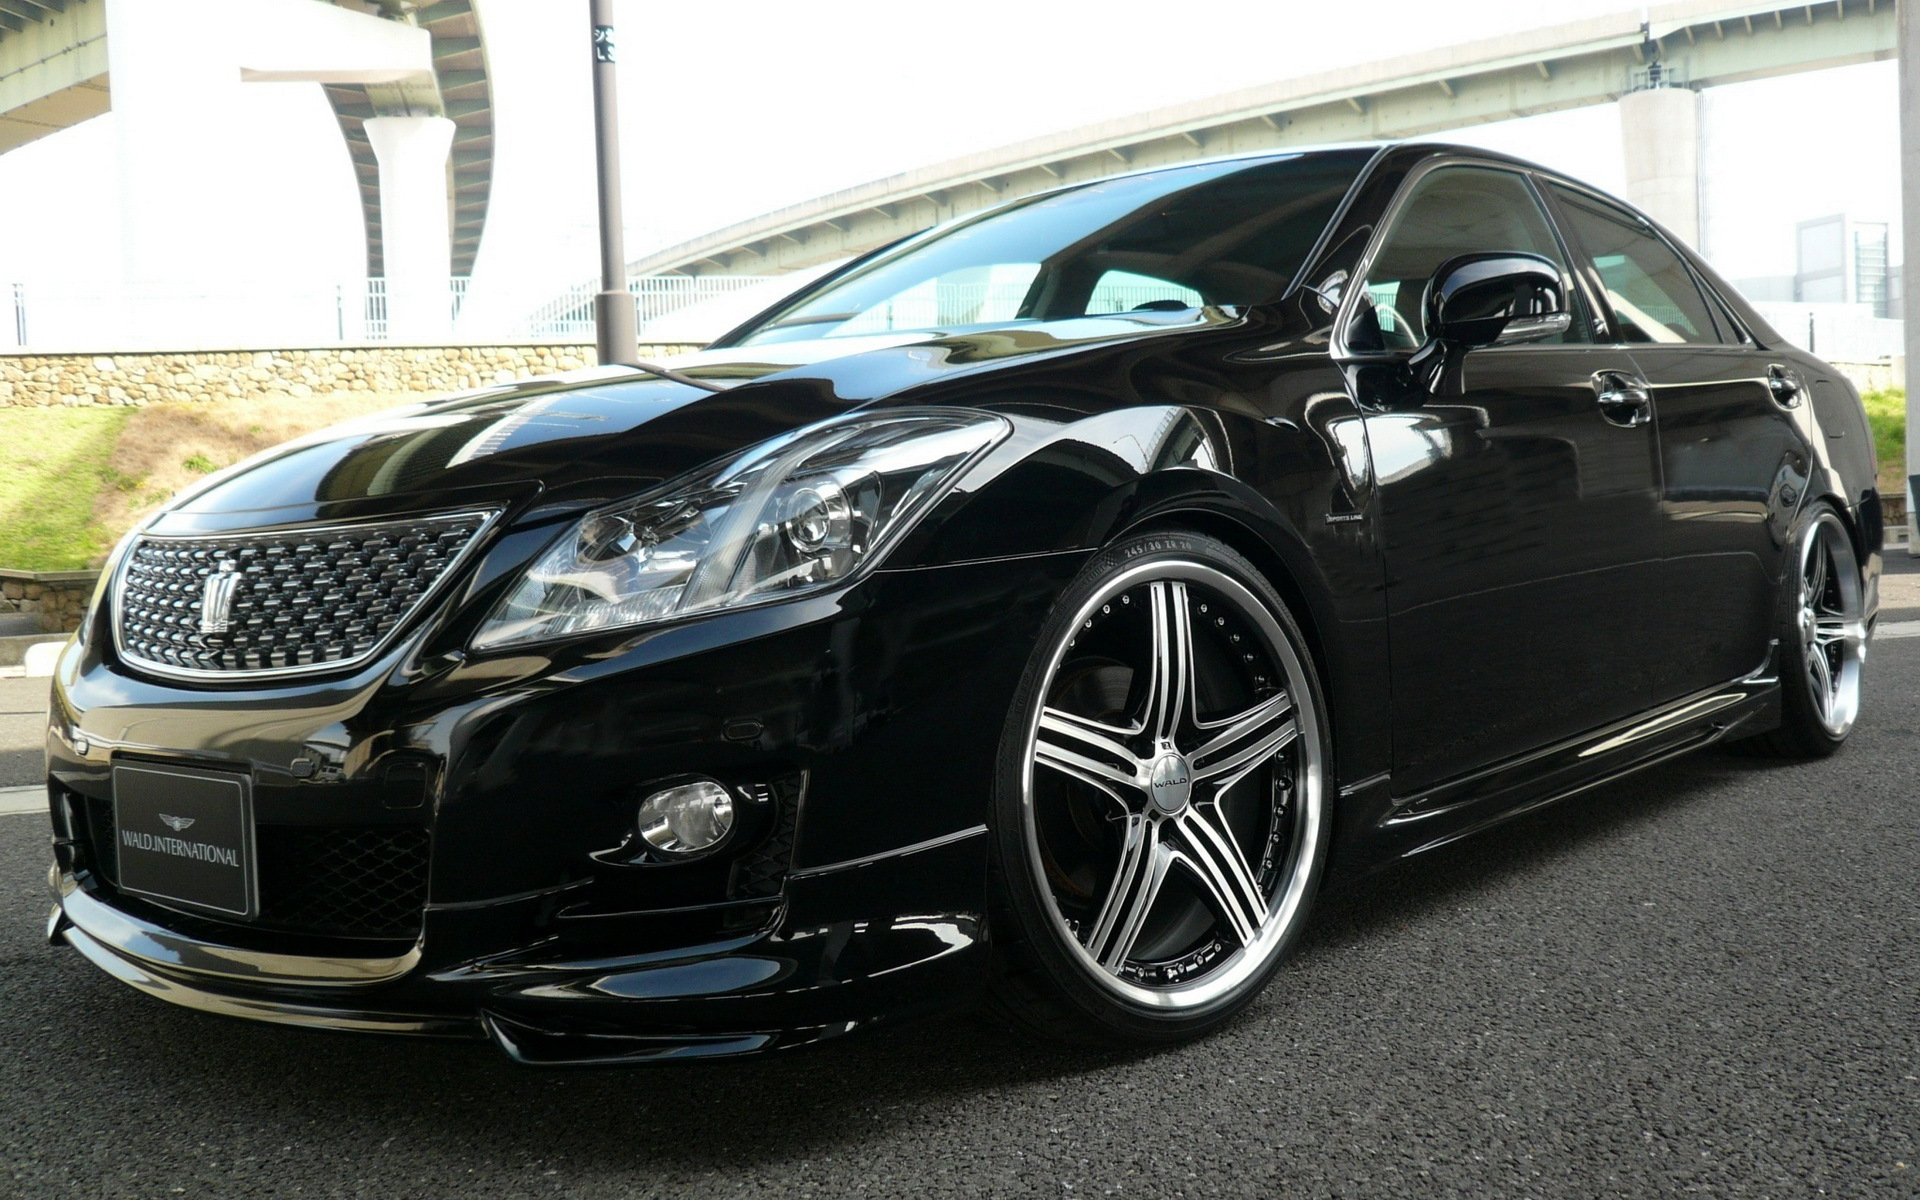 Wallpaper of toyota crown athlete supercharger background HD image 1920x1200